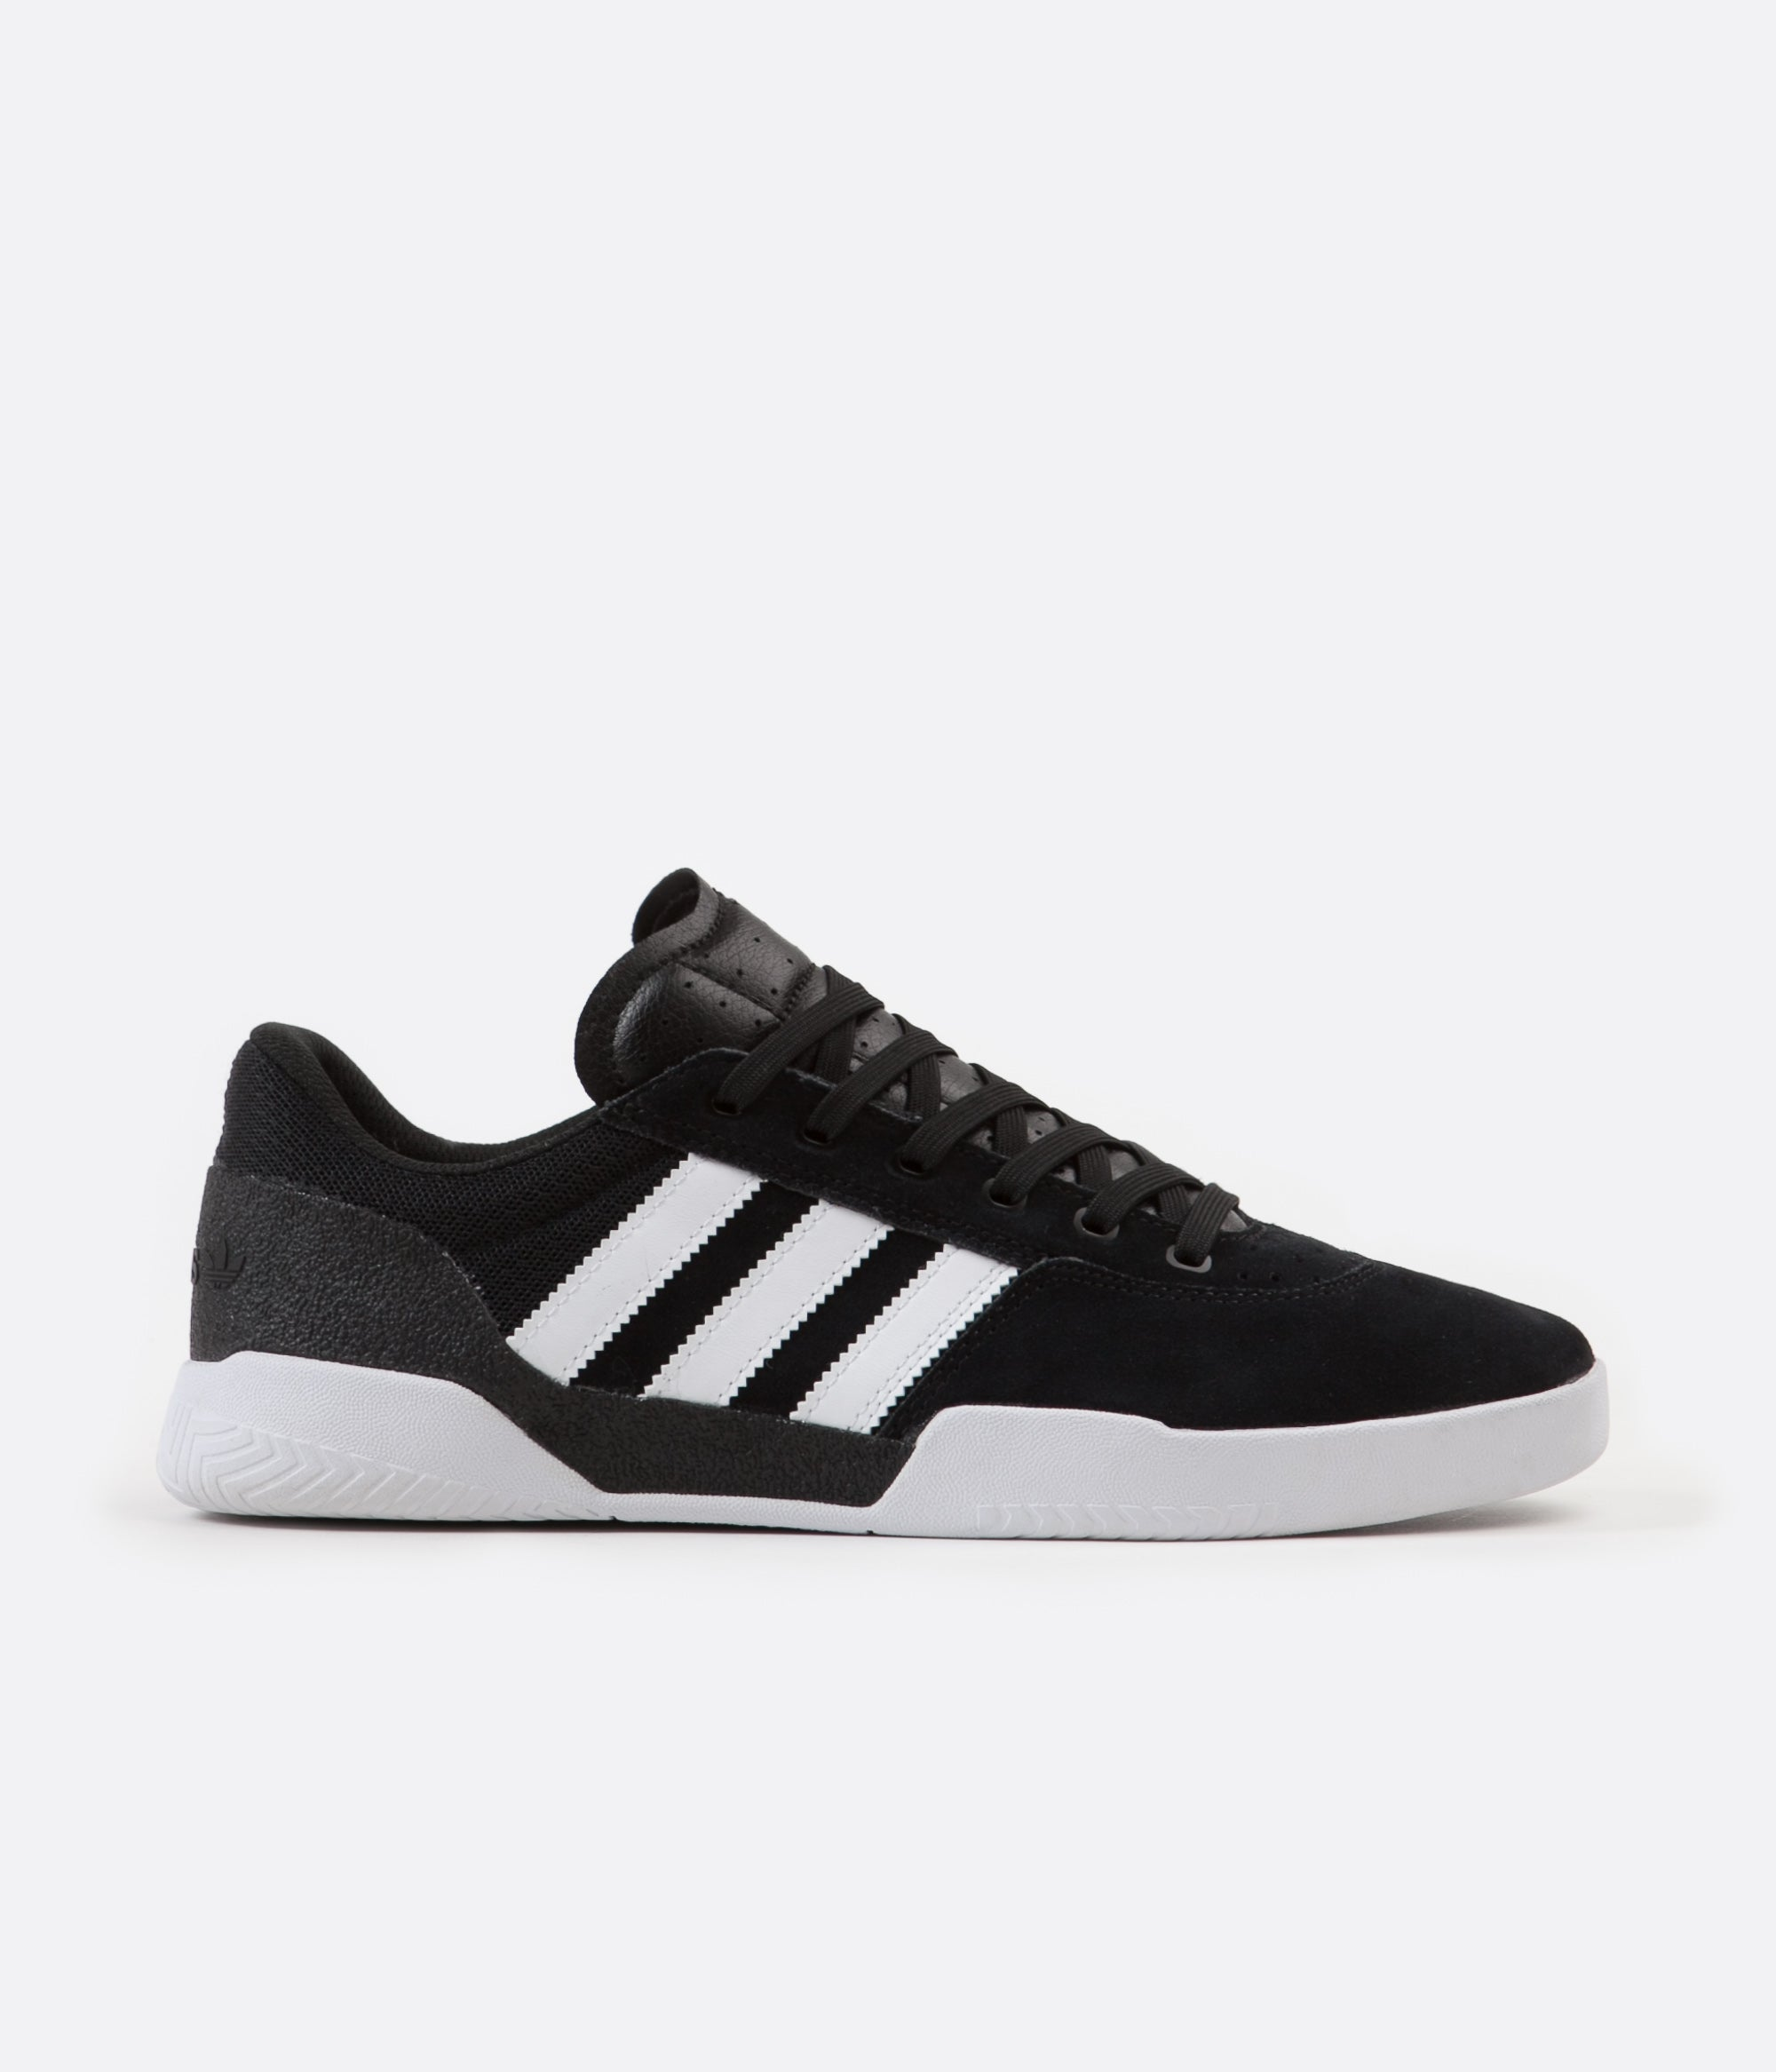 Adidas City Cup Shoes - Core Black / FTW White / FTW White